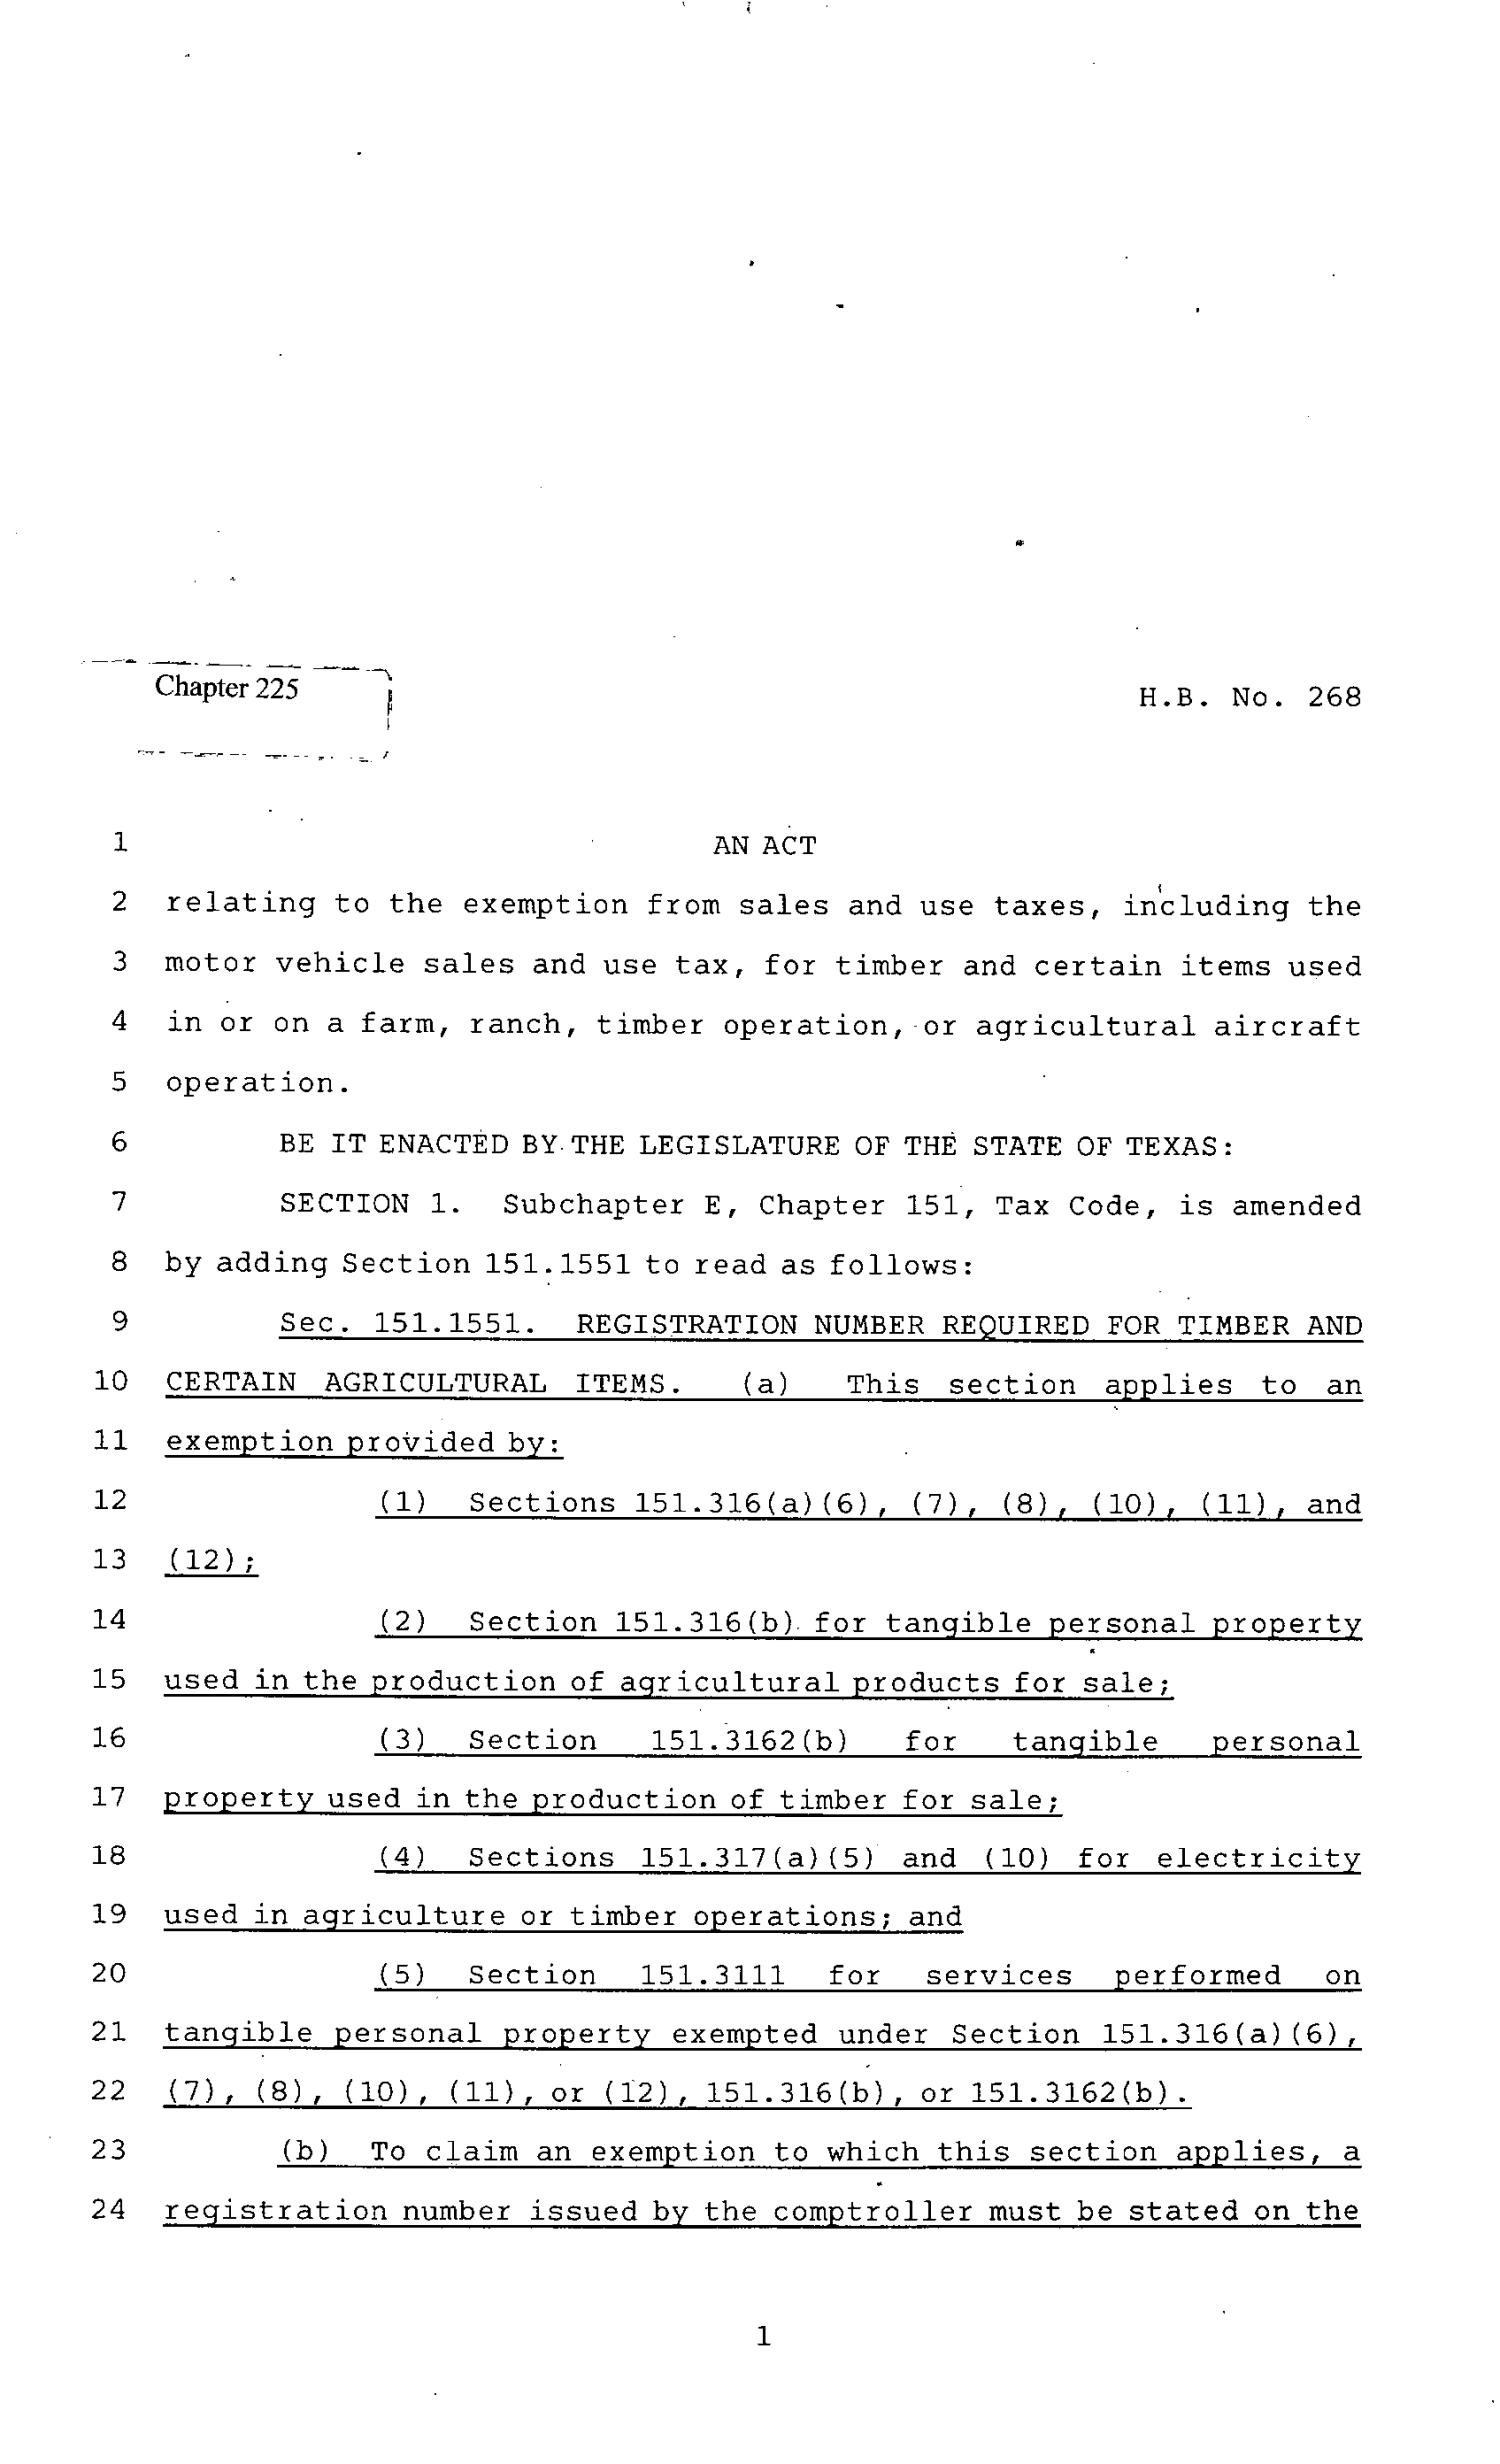 82nd Texas Legislature, Regular Session, House Bill 268, Chapter 225                                                                                                      [Sequence #]: 1 of 13